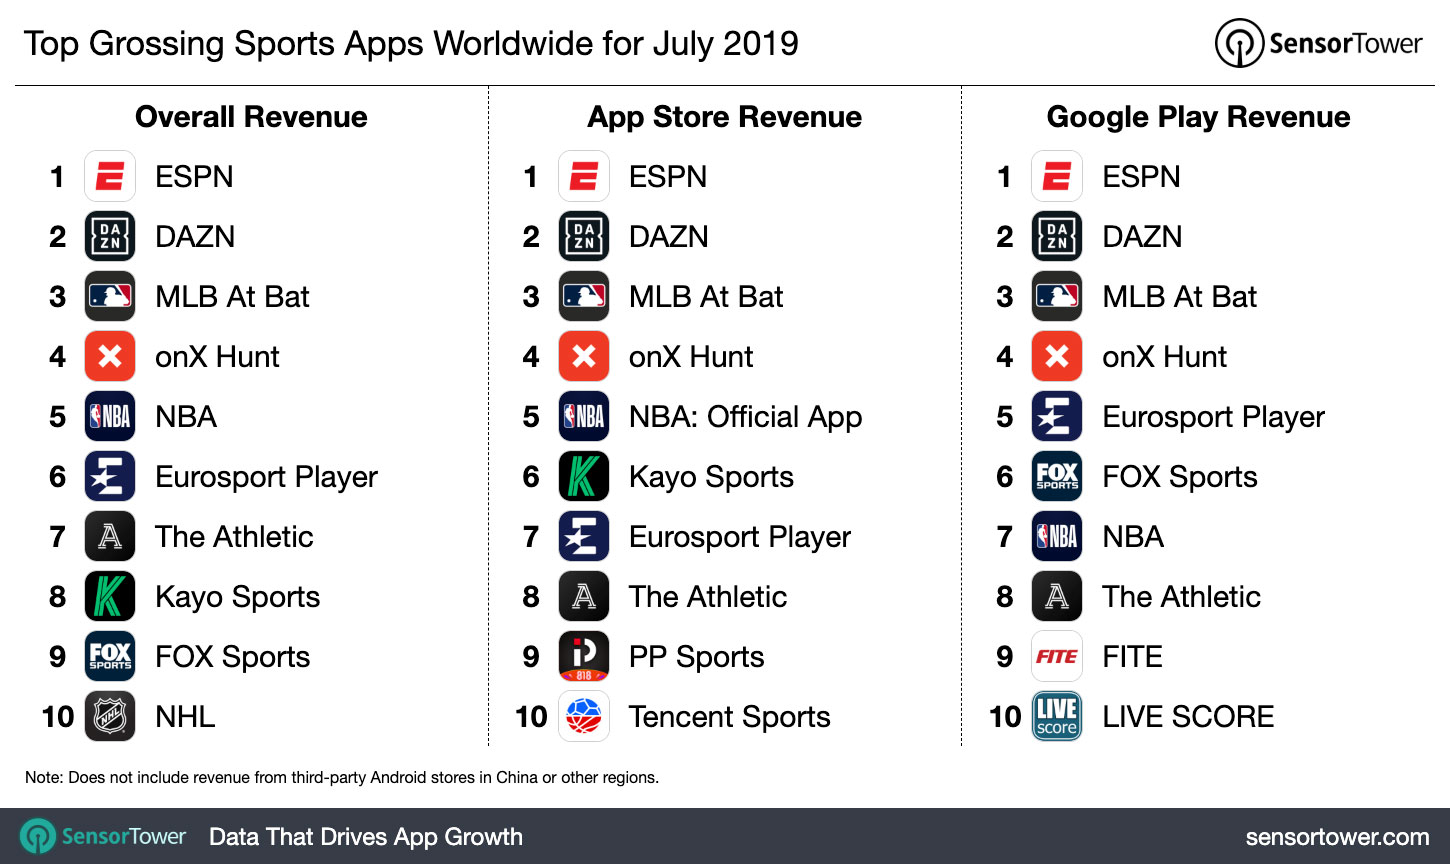 Top Grossing Sports Apps Worldwide for July 2019